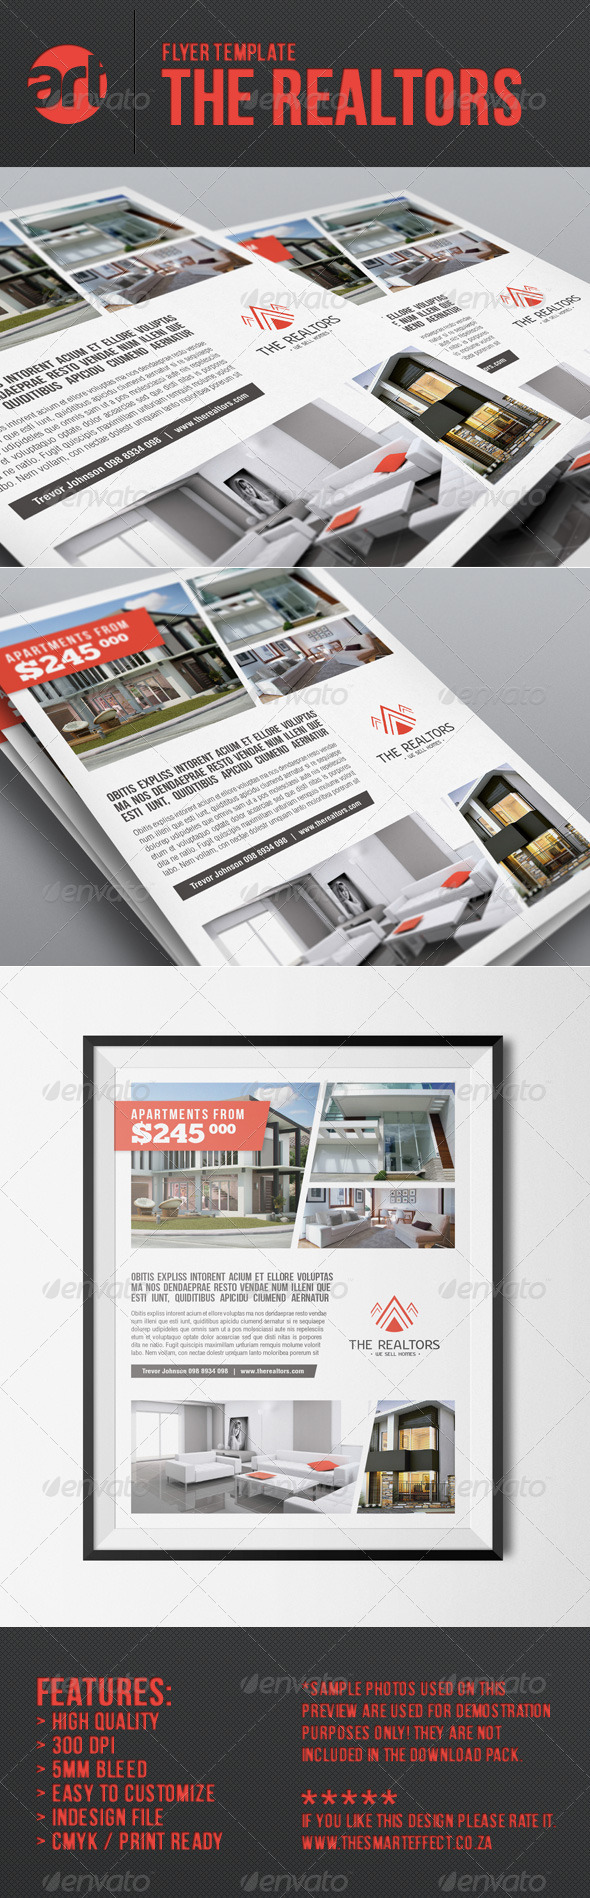 The Realtors Flyer Template - Corporate Flyers